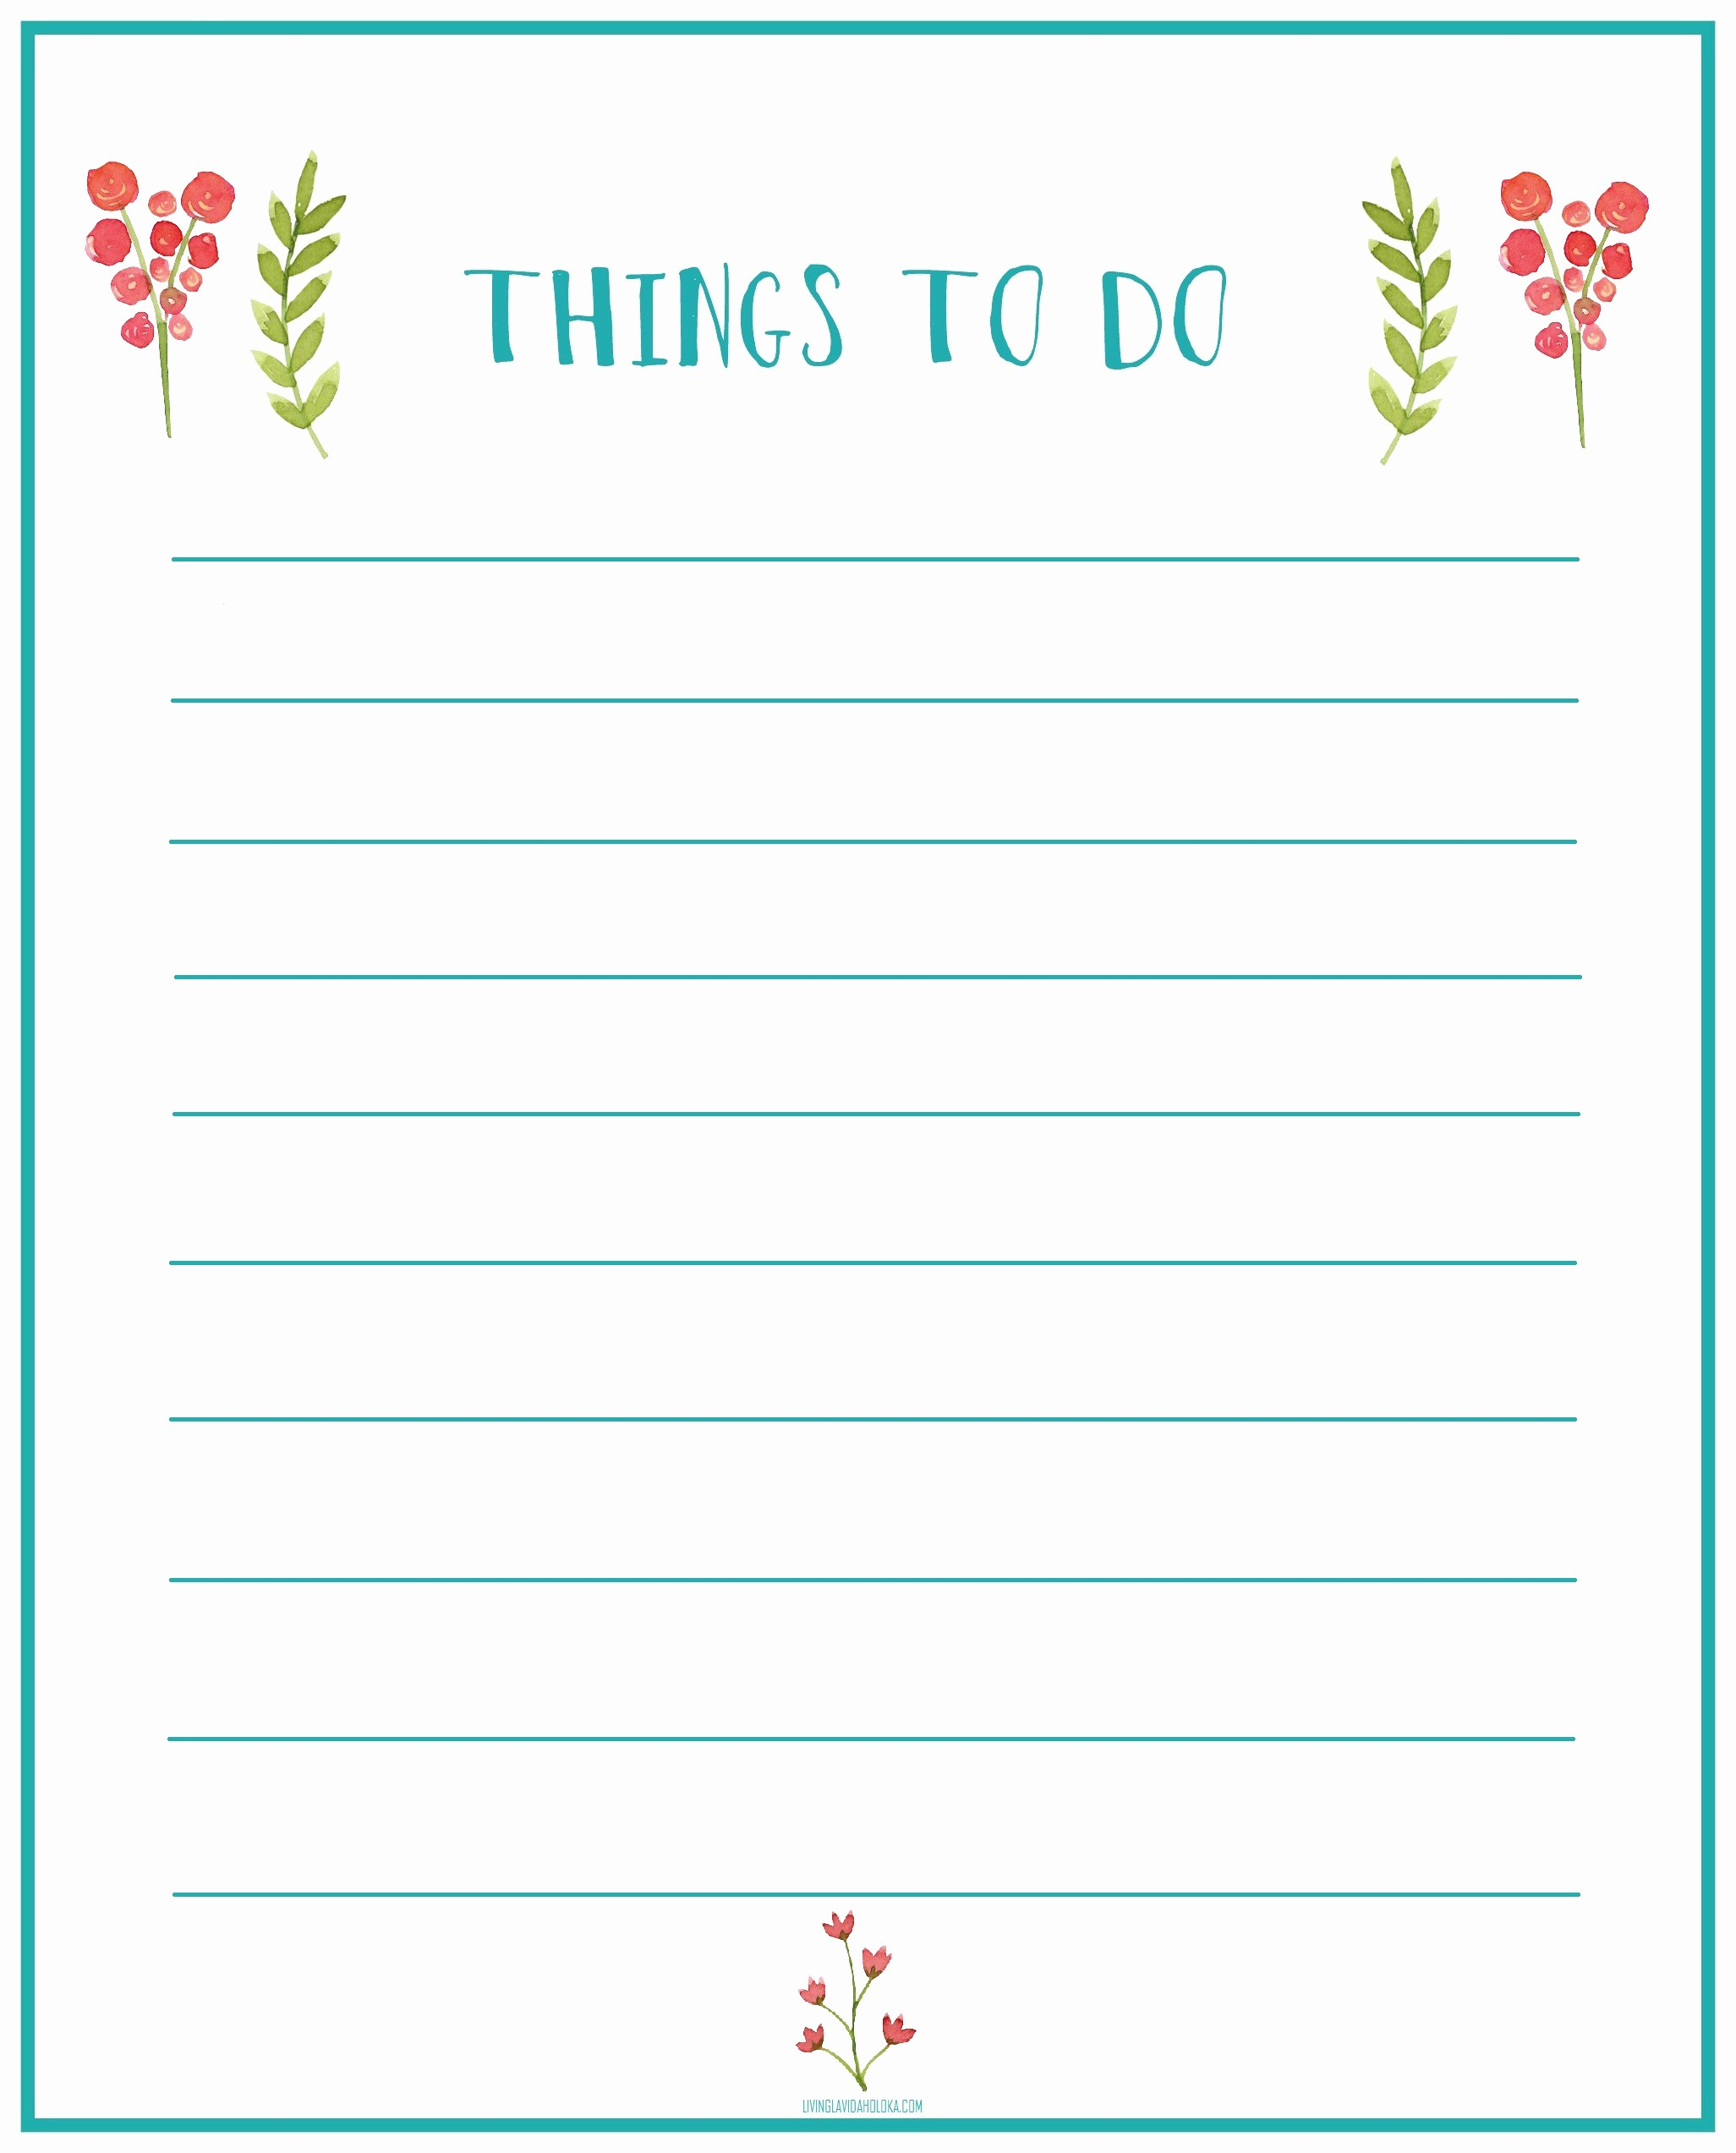 Printable Things to Do Lists Luxury Home Fice Update Things to Do Printable Living La